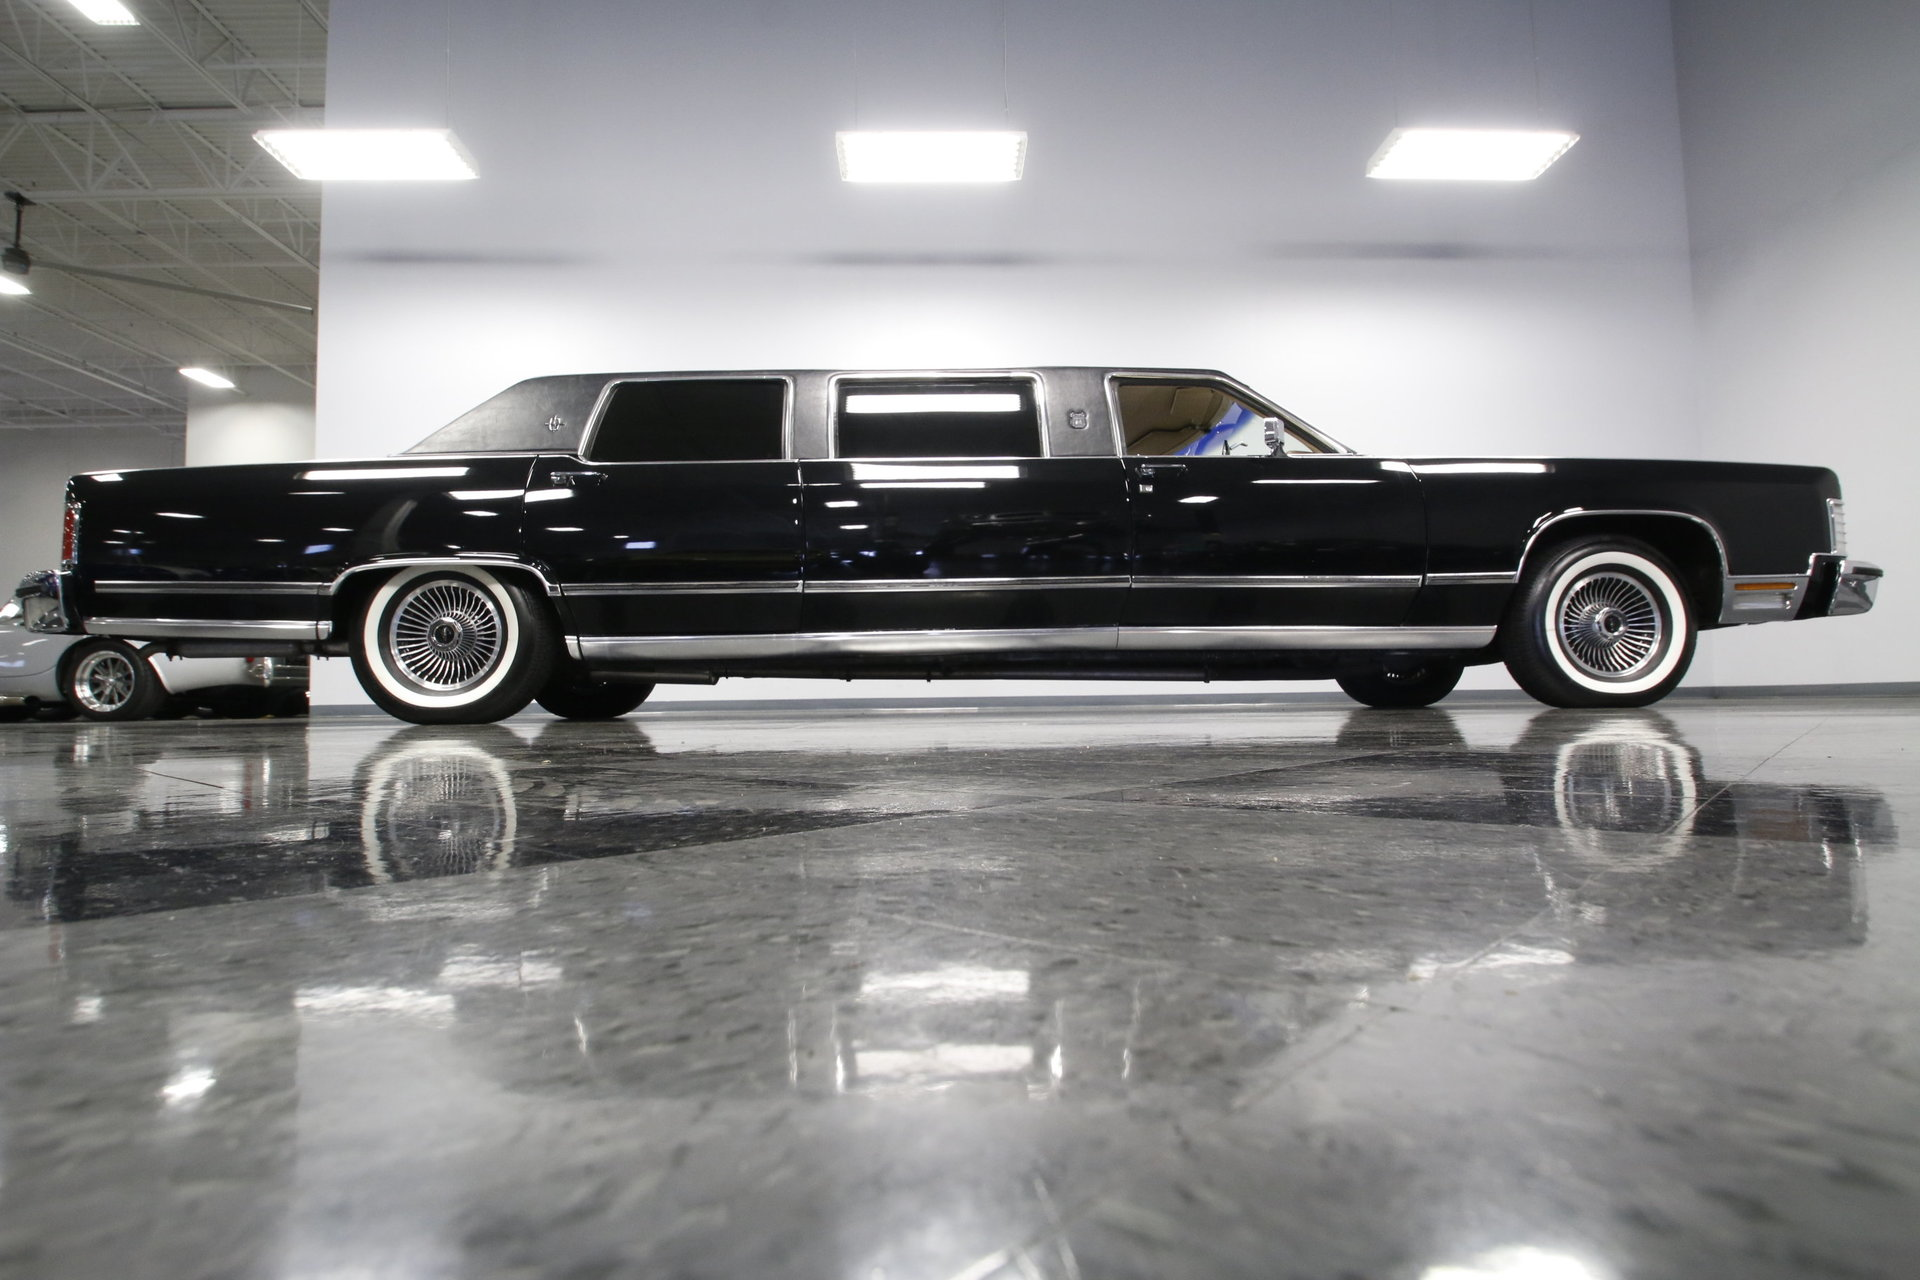 D Bfd Hd Lincoln Town Car Stretch Limo